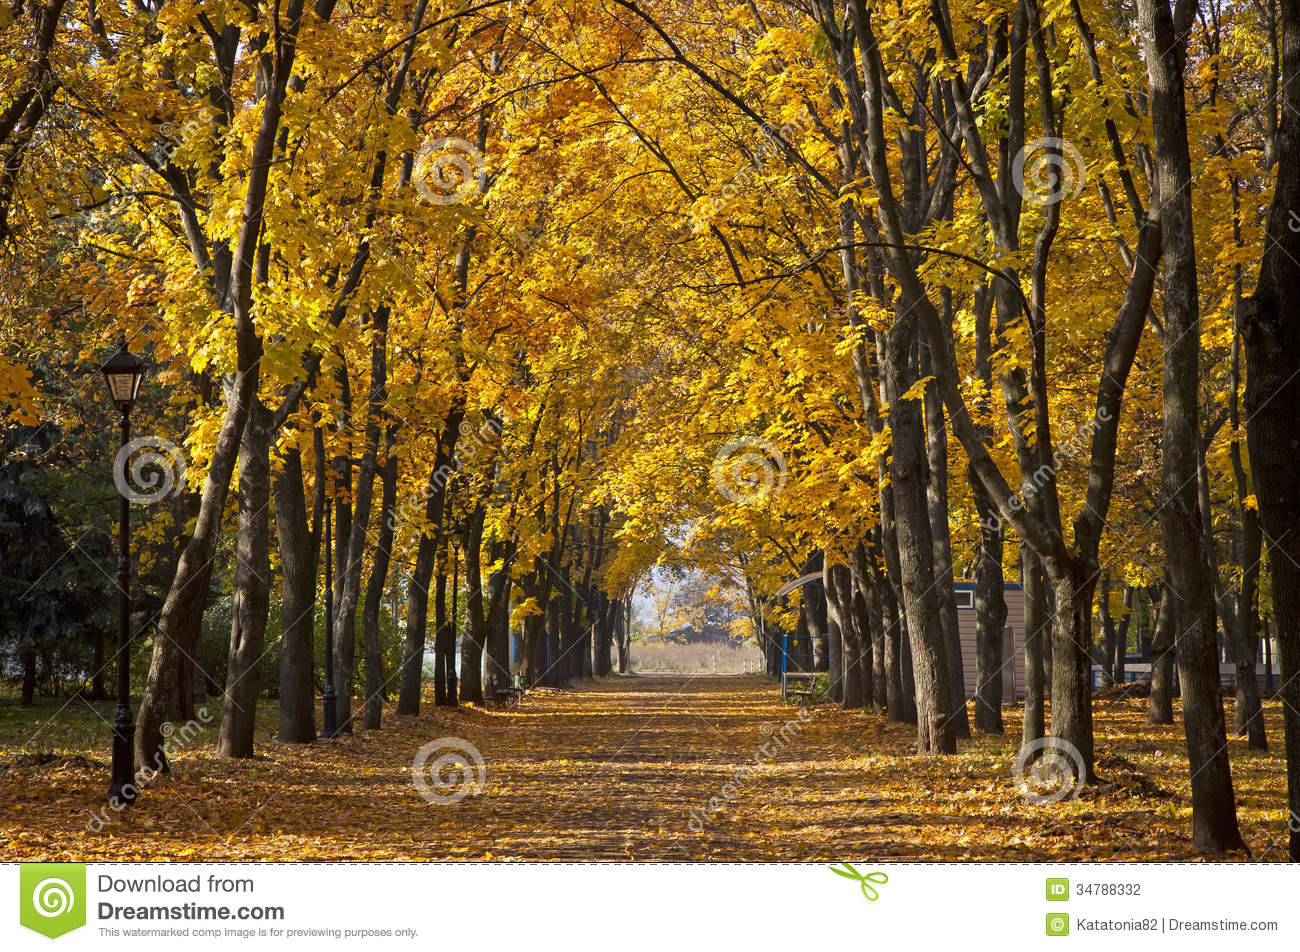 Garden Walkway With Picturesque Autumn Trees Stock Photography ...